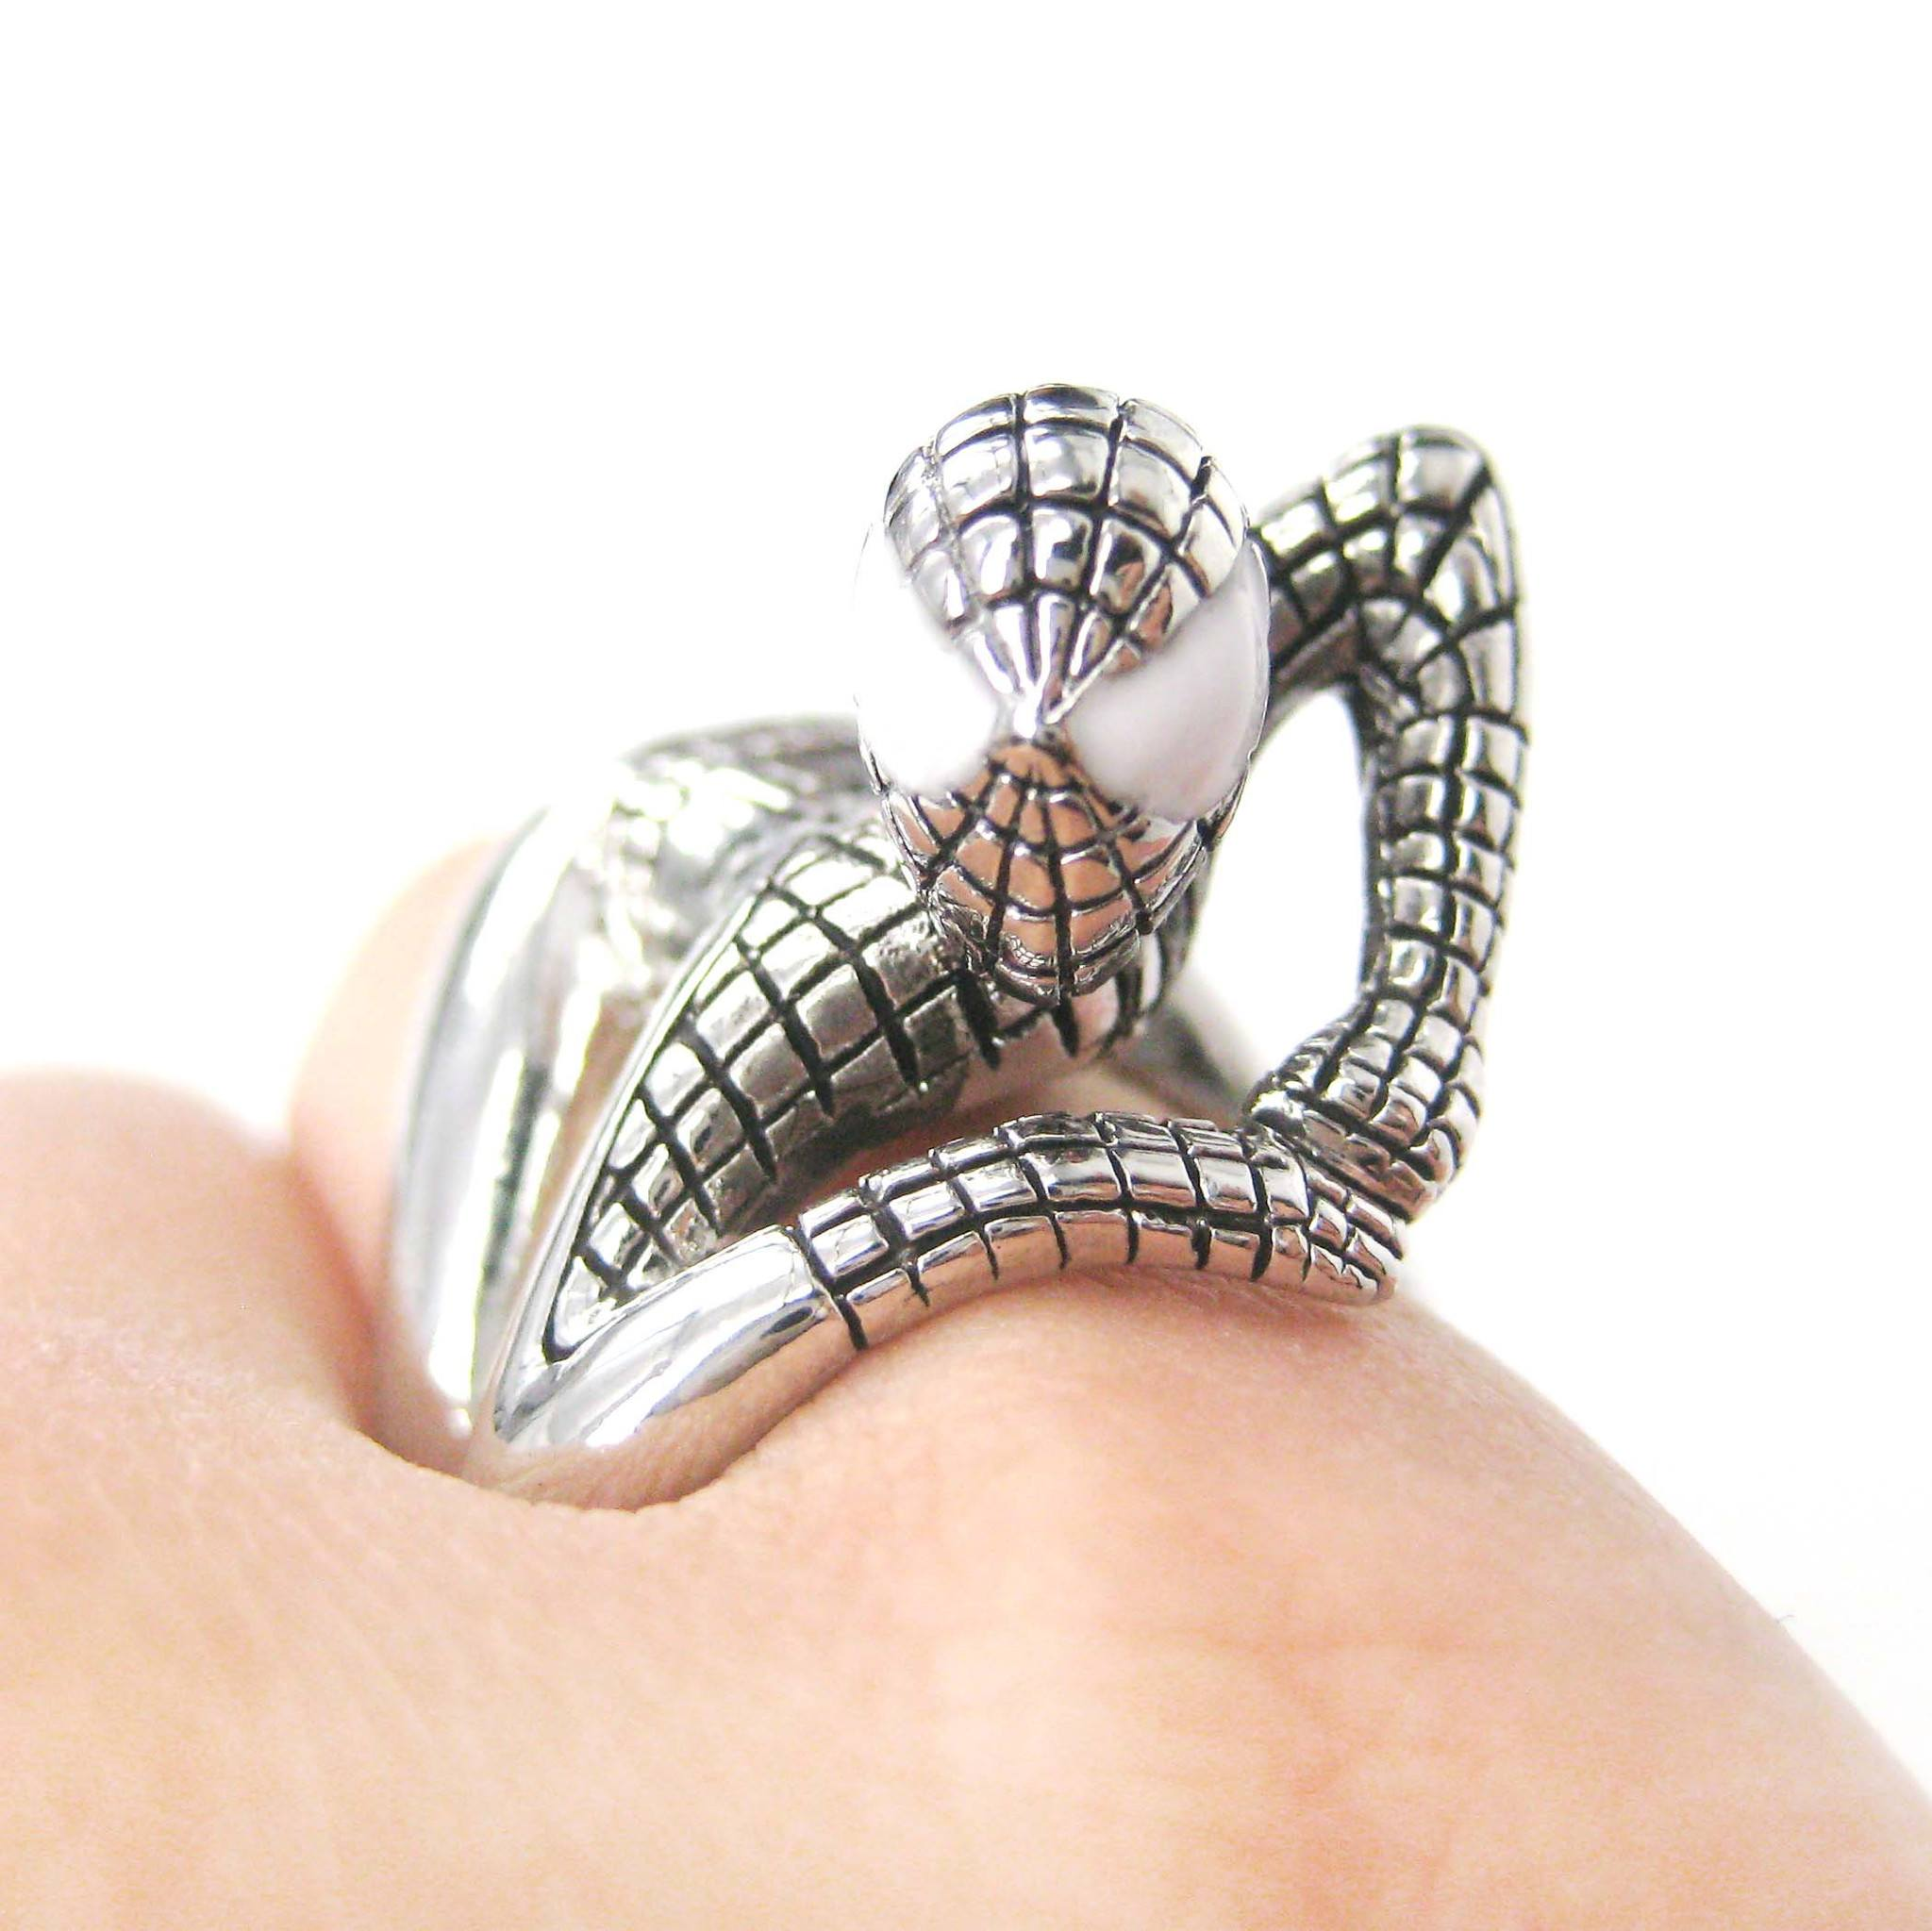 realistic-spiderman-wrapped-around-your-finger-ring-in-shiny-silver-us-size-8-and-9